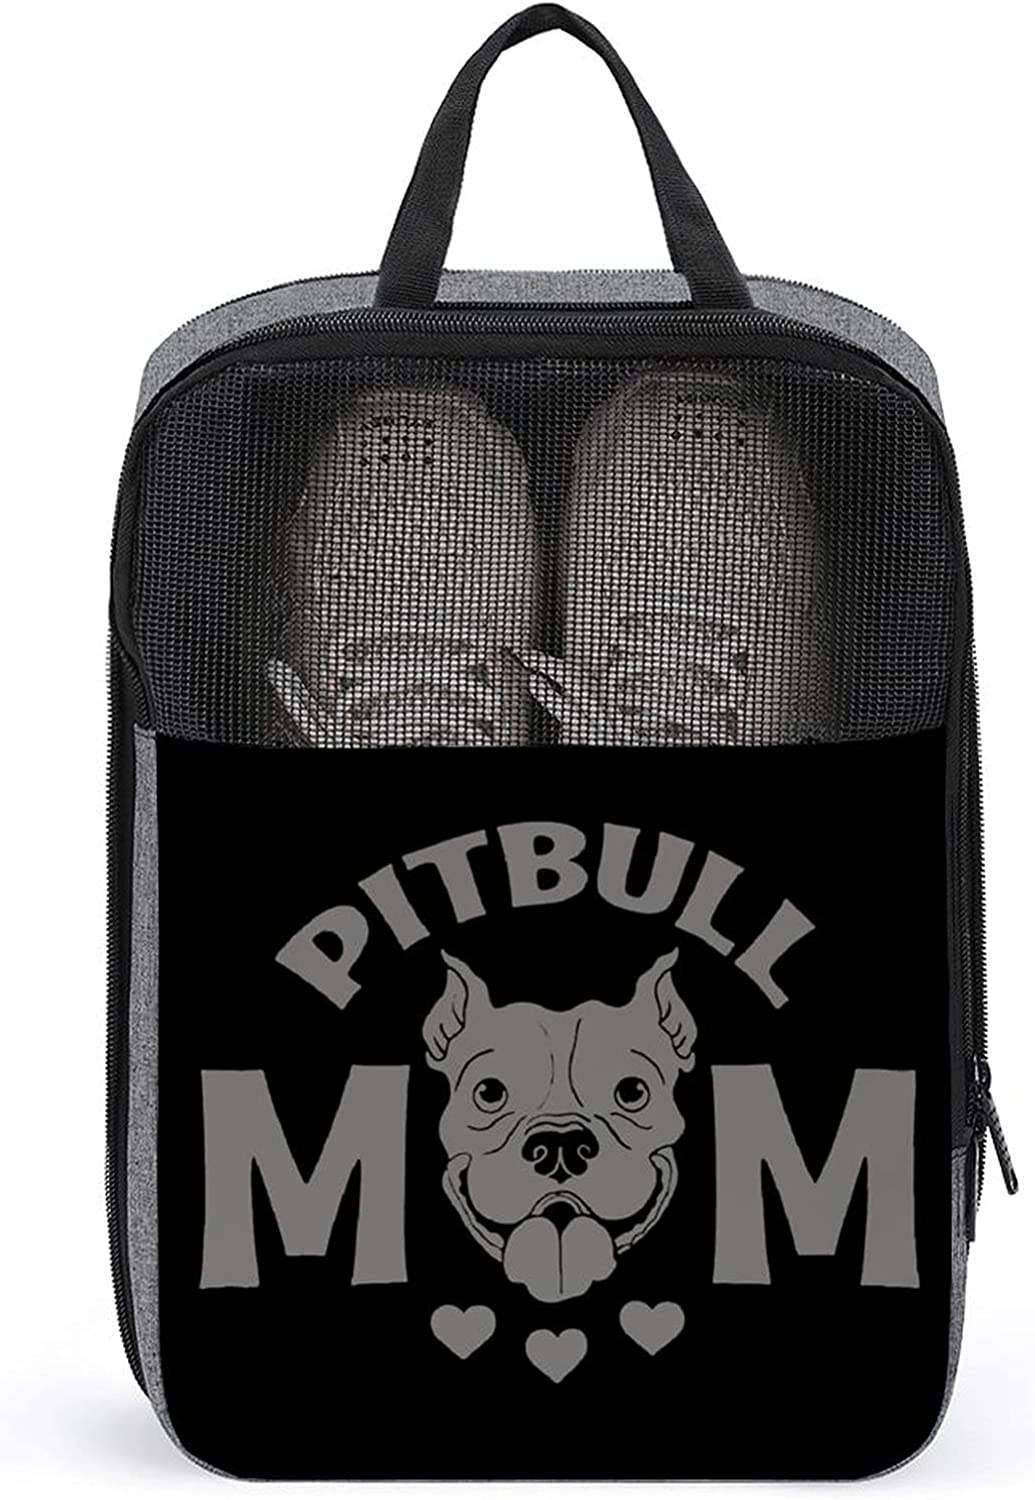 Pitbull 2021 autumn and winter new Mom Print Travel Shoes Storage Carrying Org online shop Bag slippers